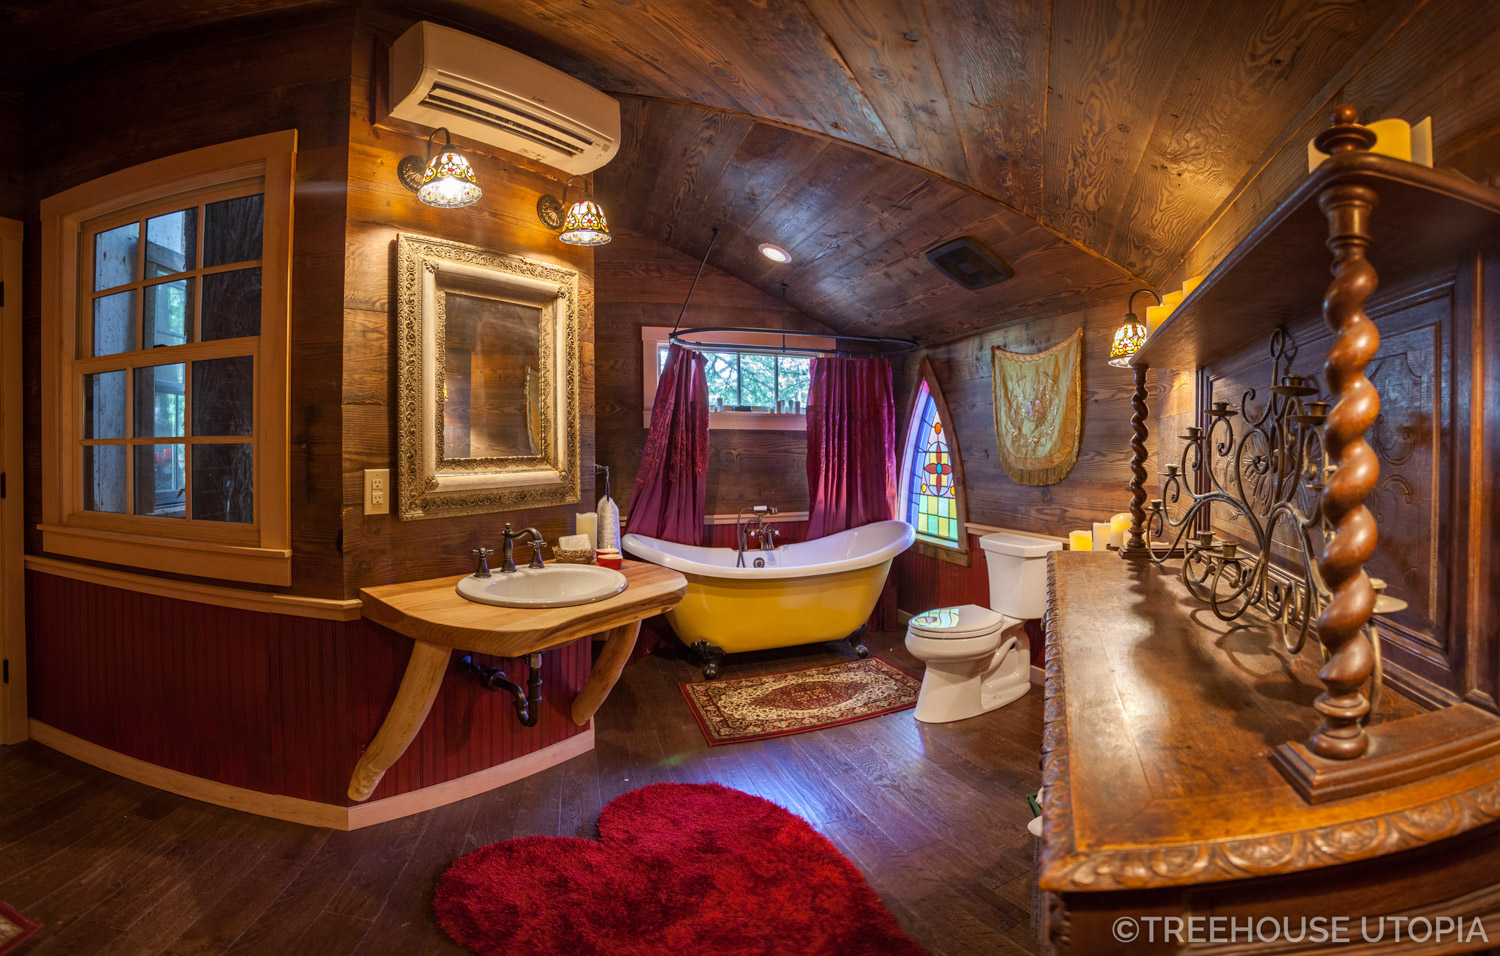 Bathtub in Chapelle at Treehouse Utopia, a Texas Hill Country Retreat. Photo by Nelson Treehouse.